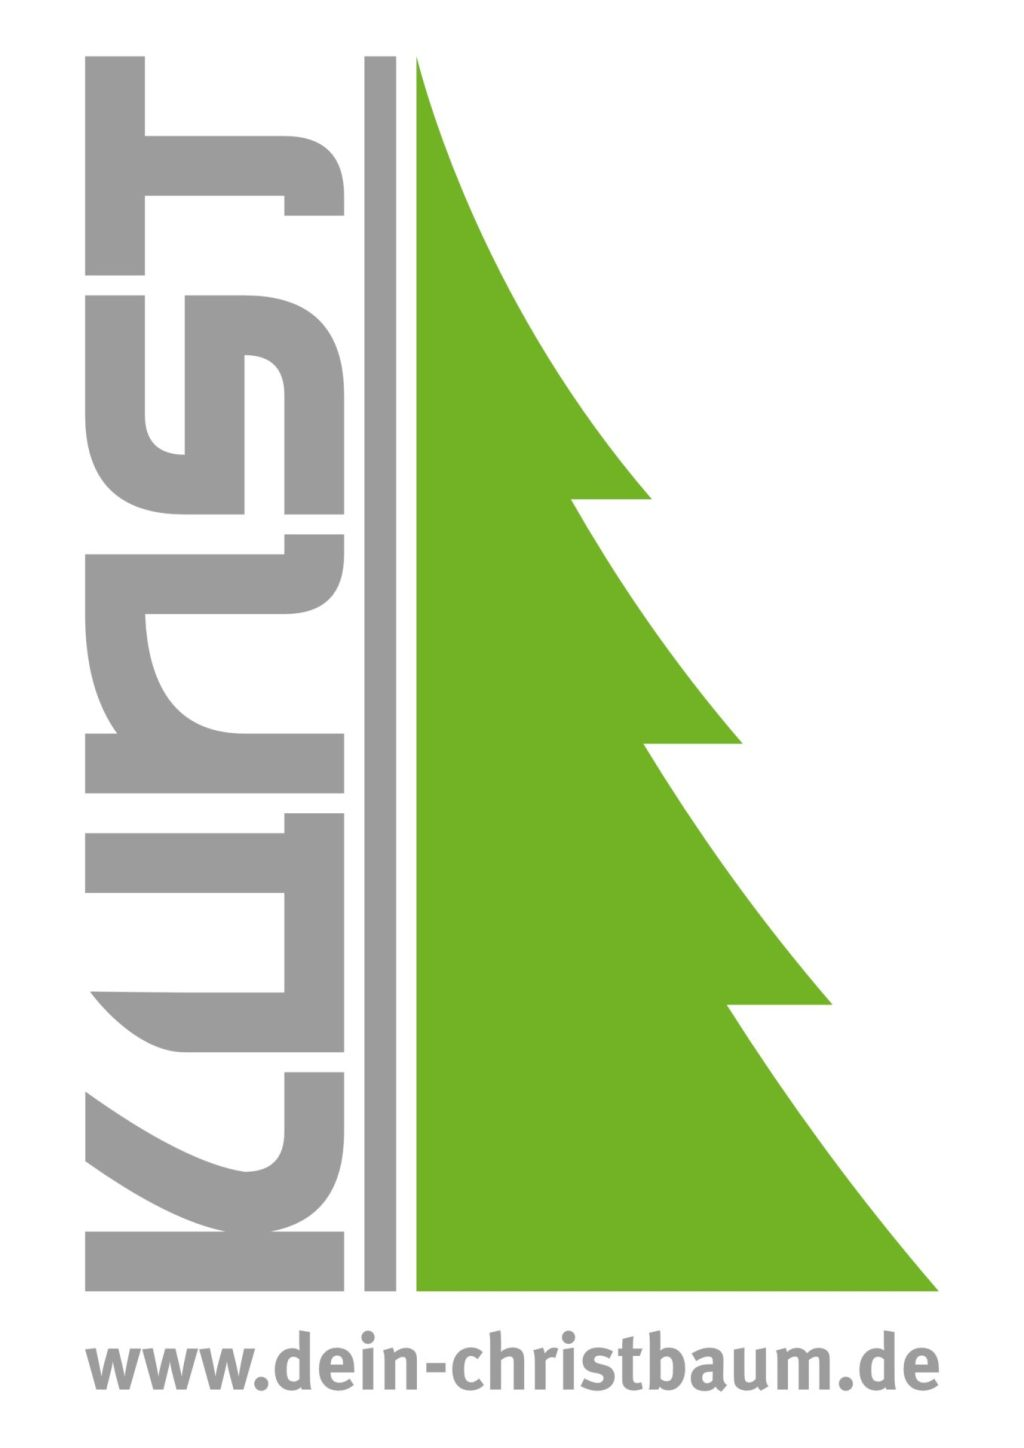 Dein-Christbaum Logo